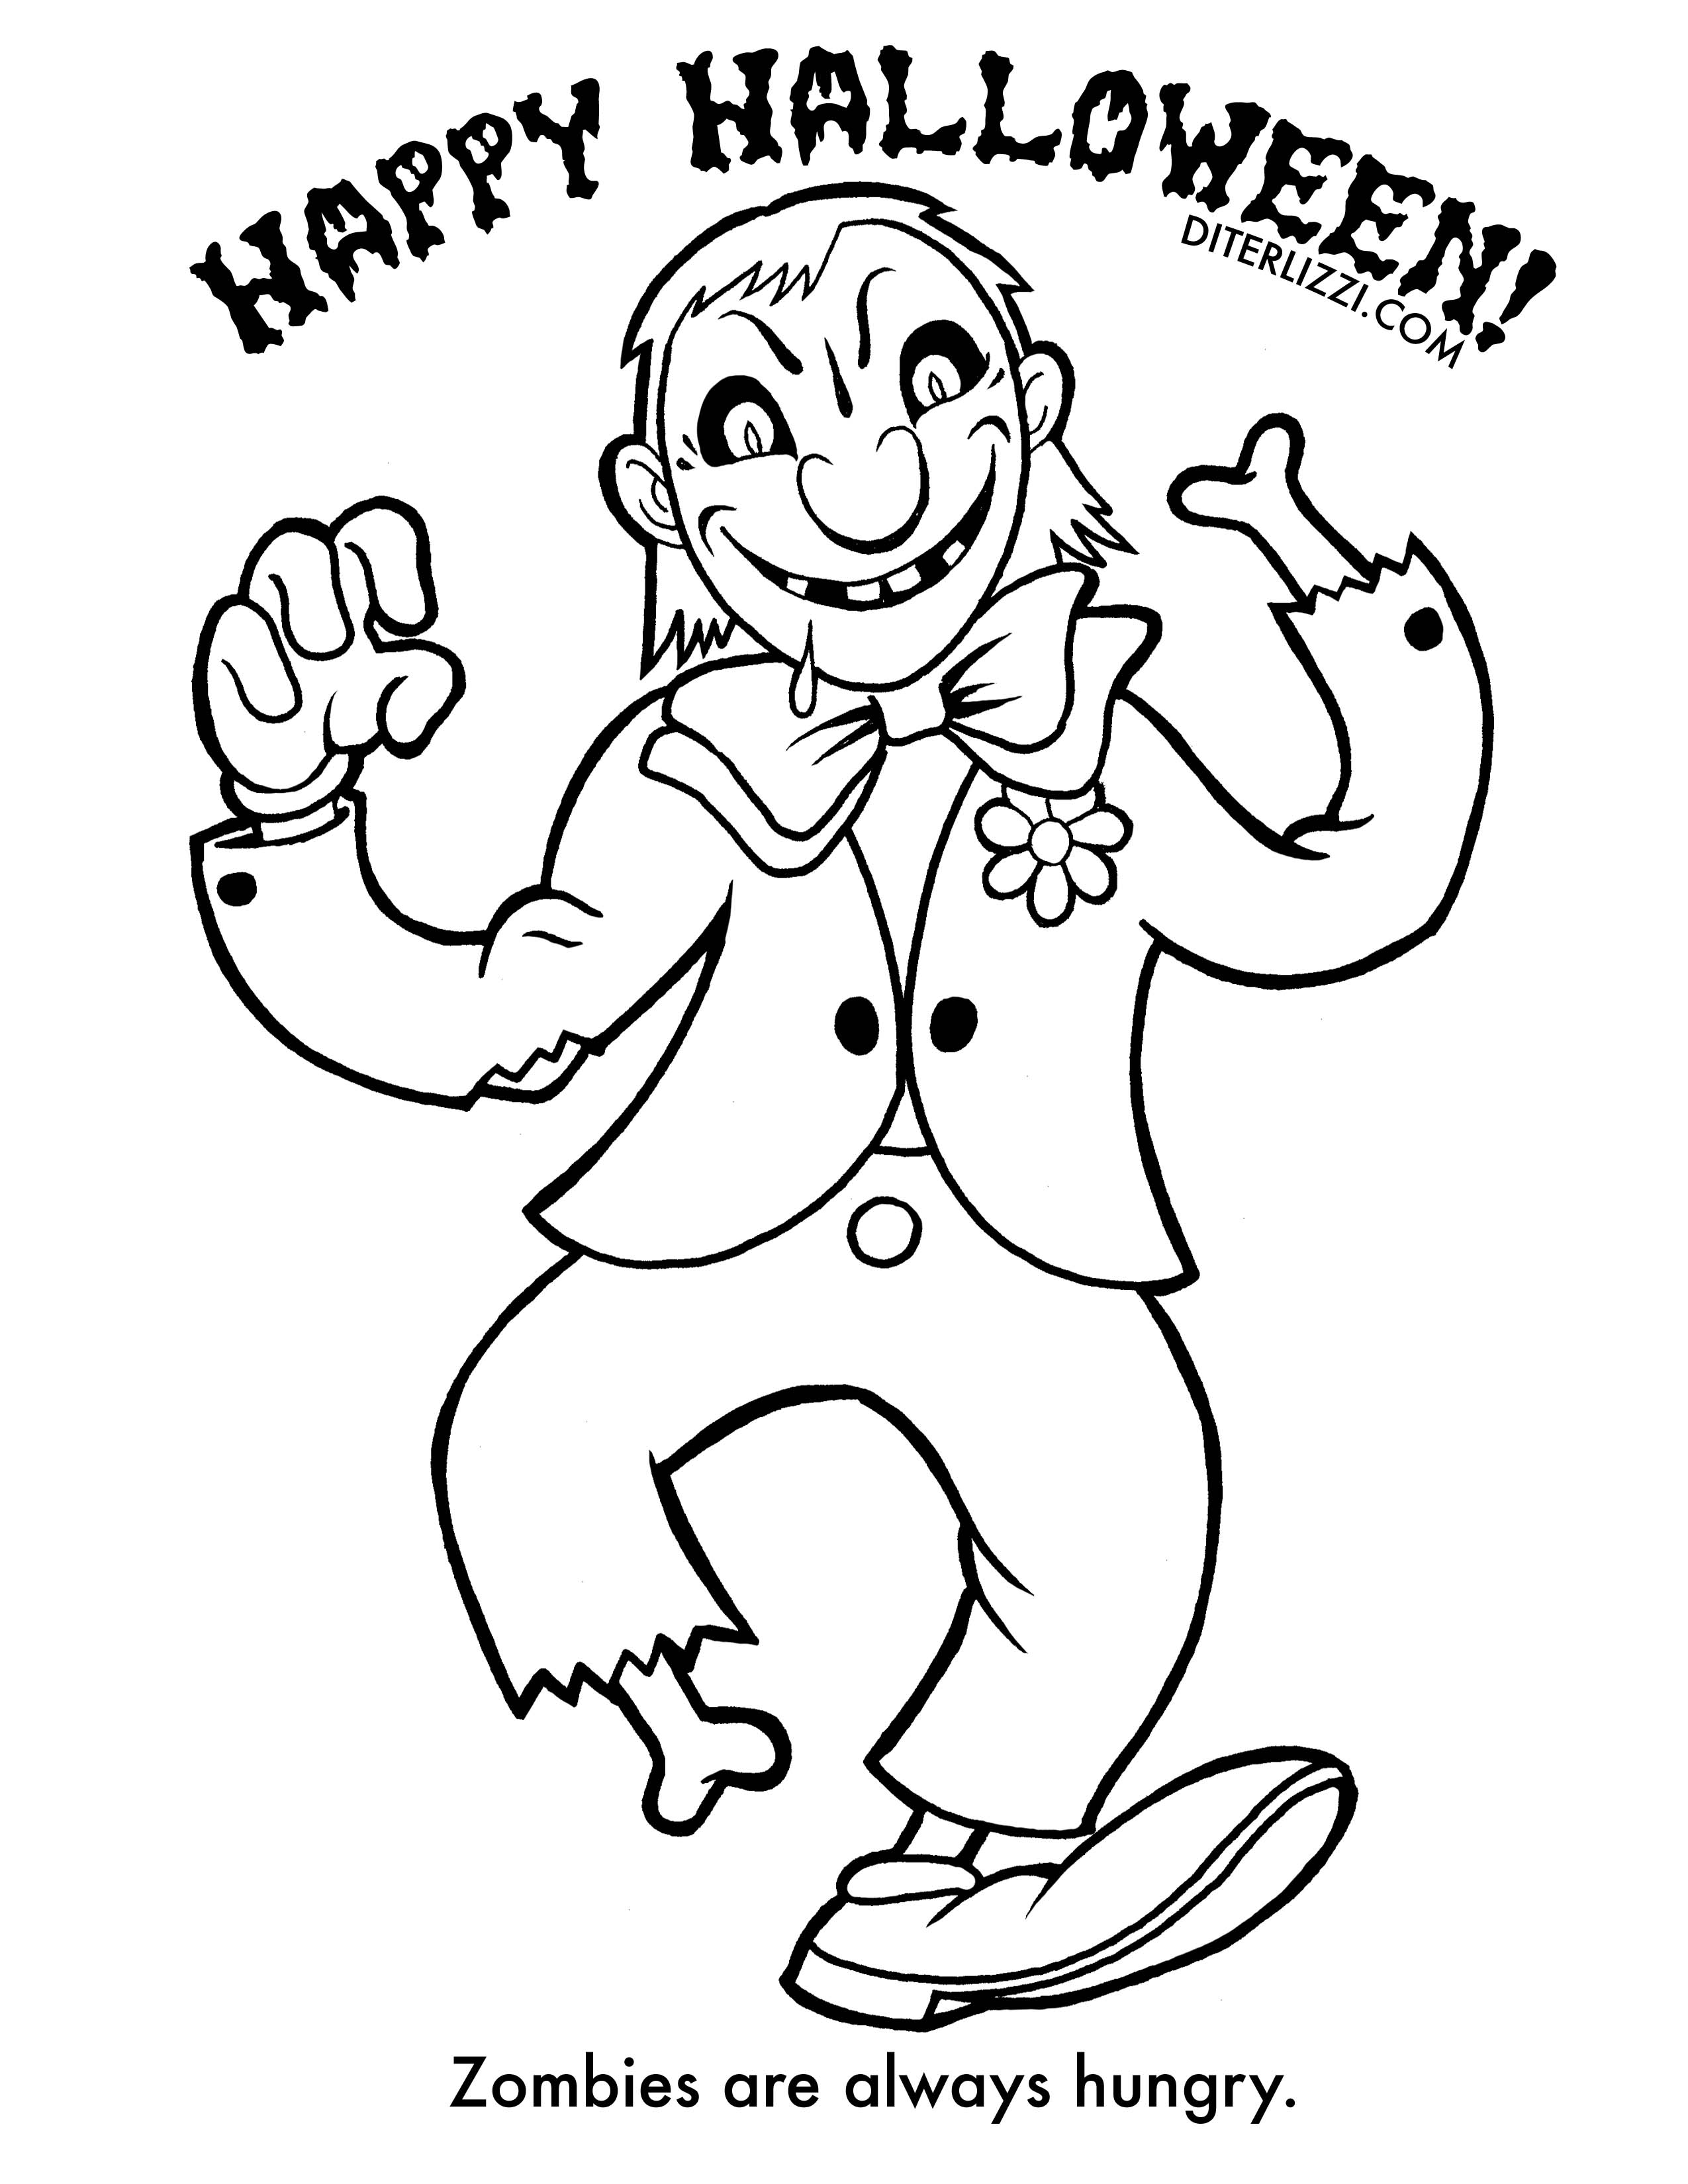 zombie coloring page zombie cartoon coloring pages printable page zombie coloring